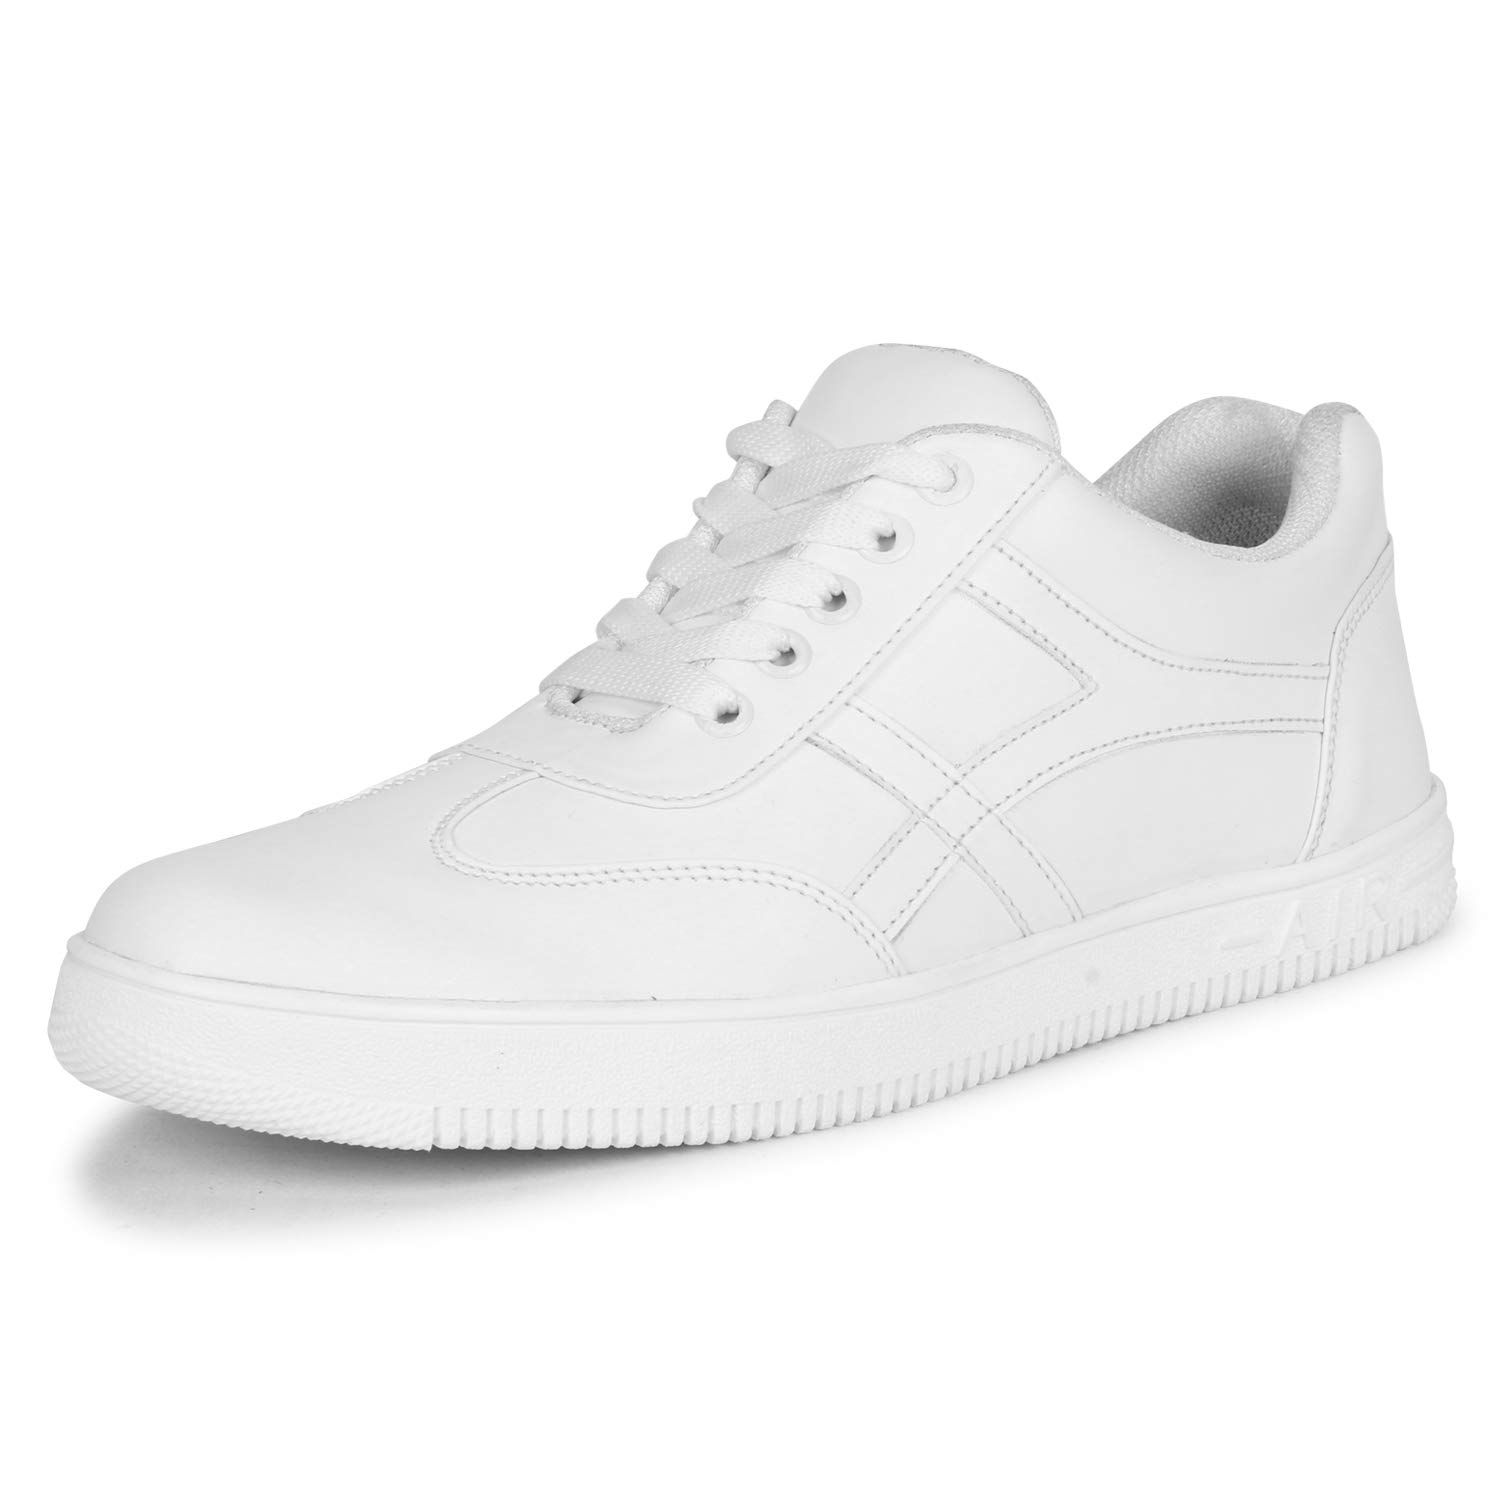 Kraasa Young Choice Sneakers for Men White UK 10 (B082MHMPRL) Amazon Price History, Amazon Price Tracker